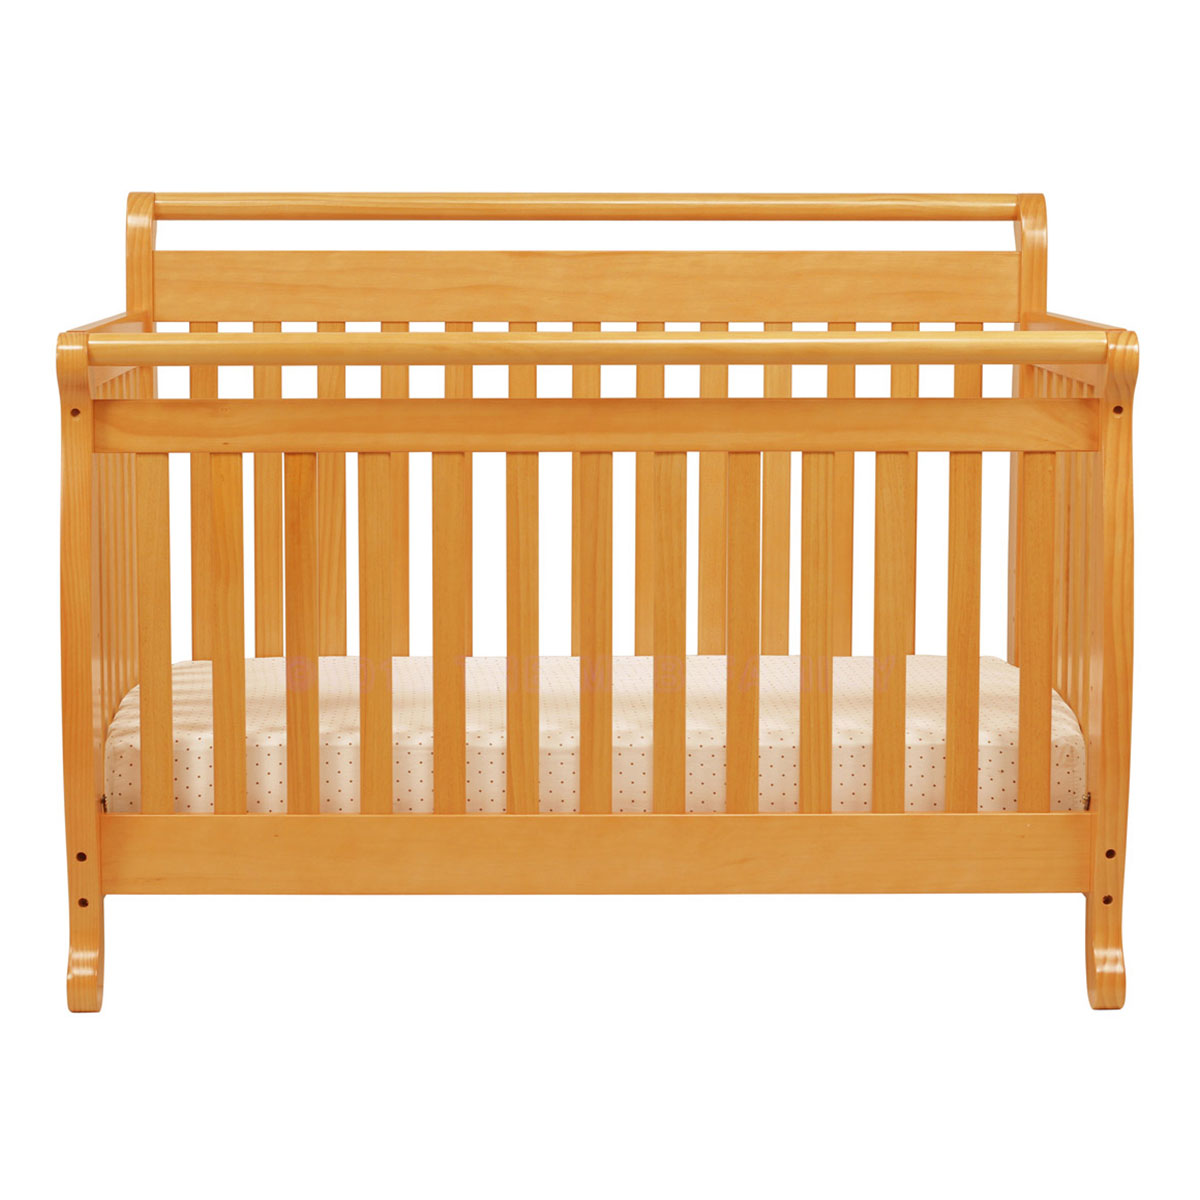 nat cribs at wood oak setsr sets furniture nursery anderson baby with amazing crib suppliers and rustic cool teak manufacturers solid hardwood